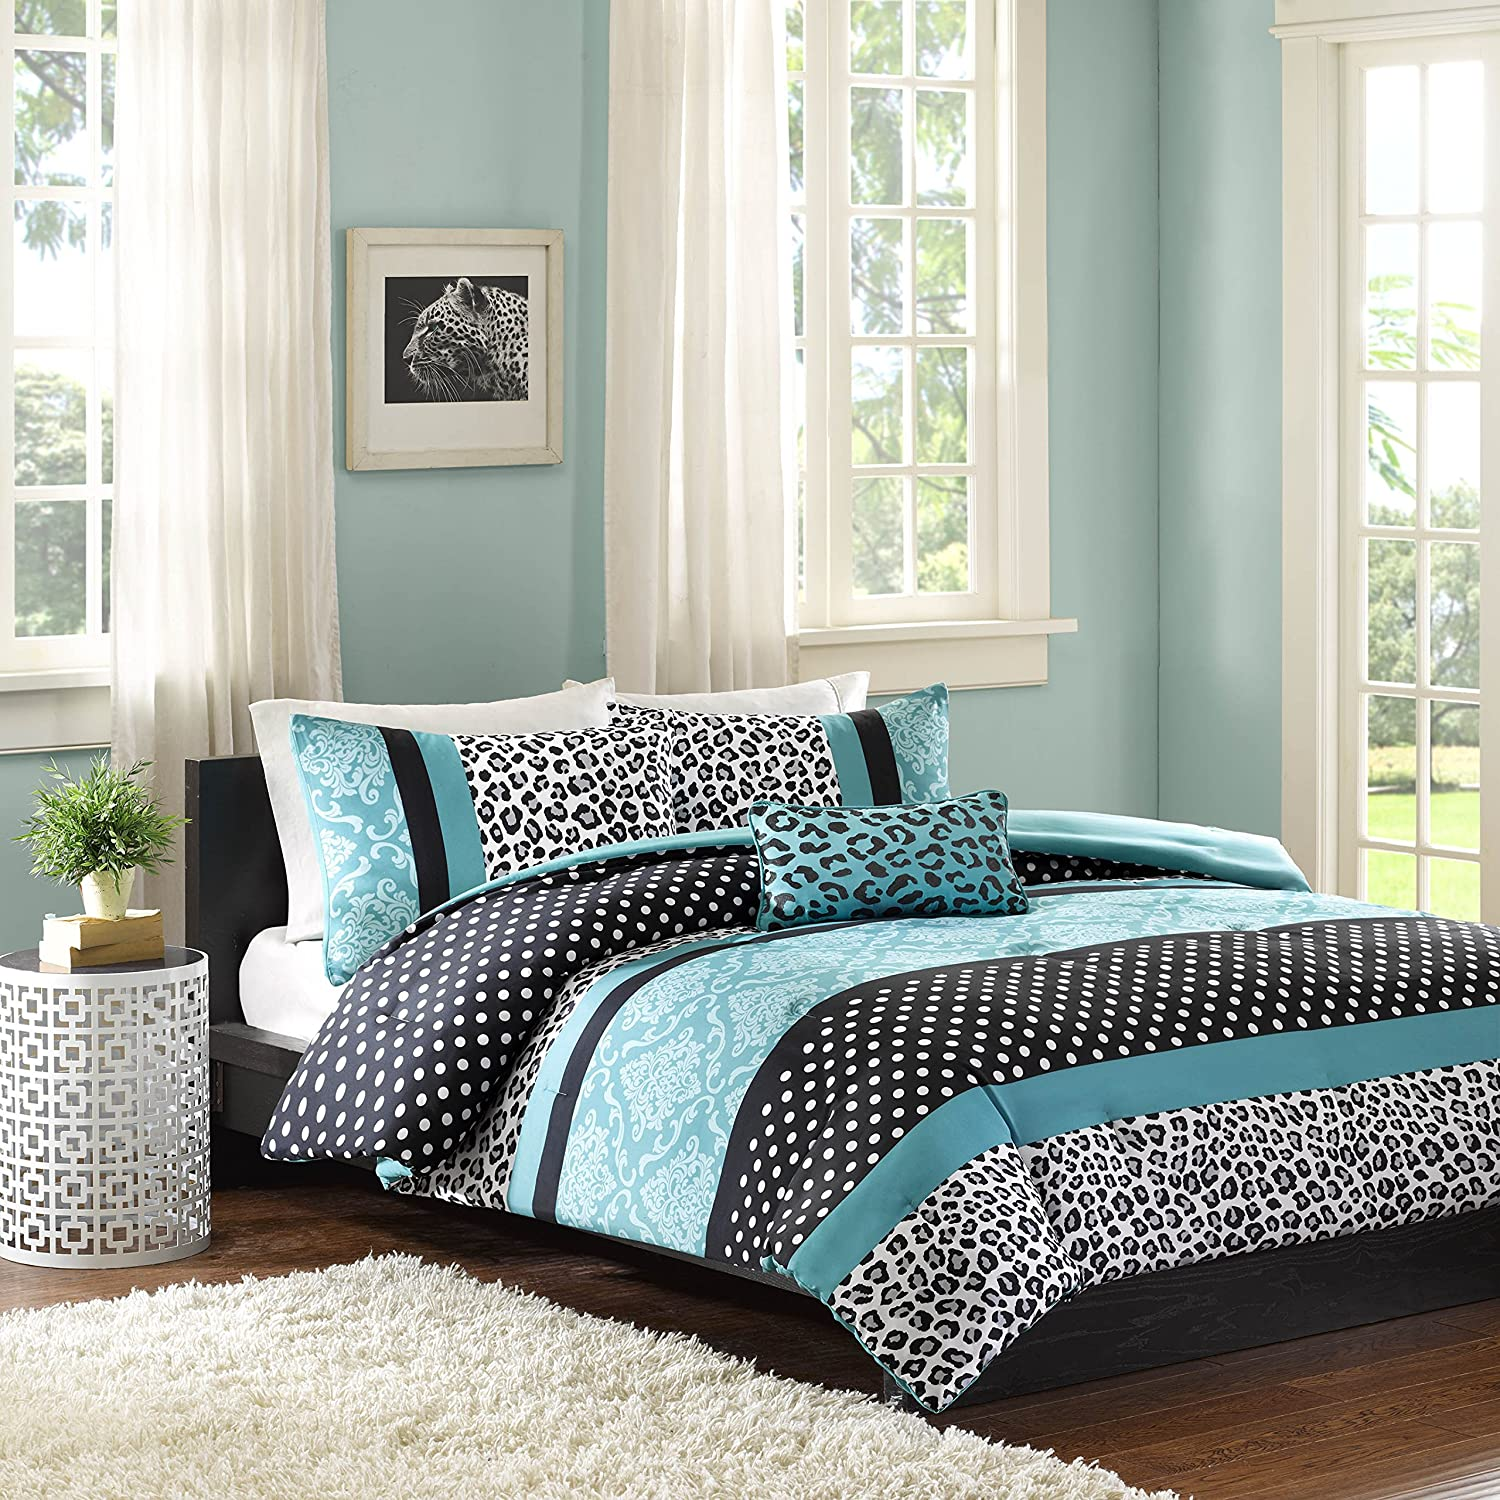 Amazoncom MiZone Chloe Comforter Set Full Queen Teal Home - Black and teal comforter sets